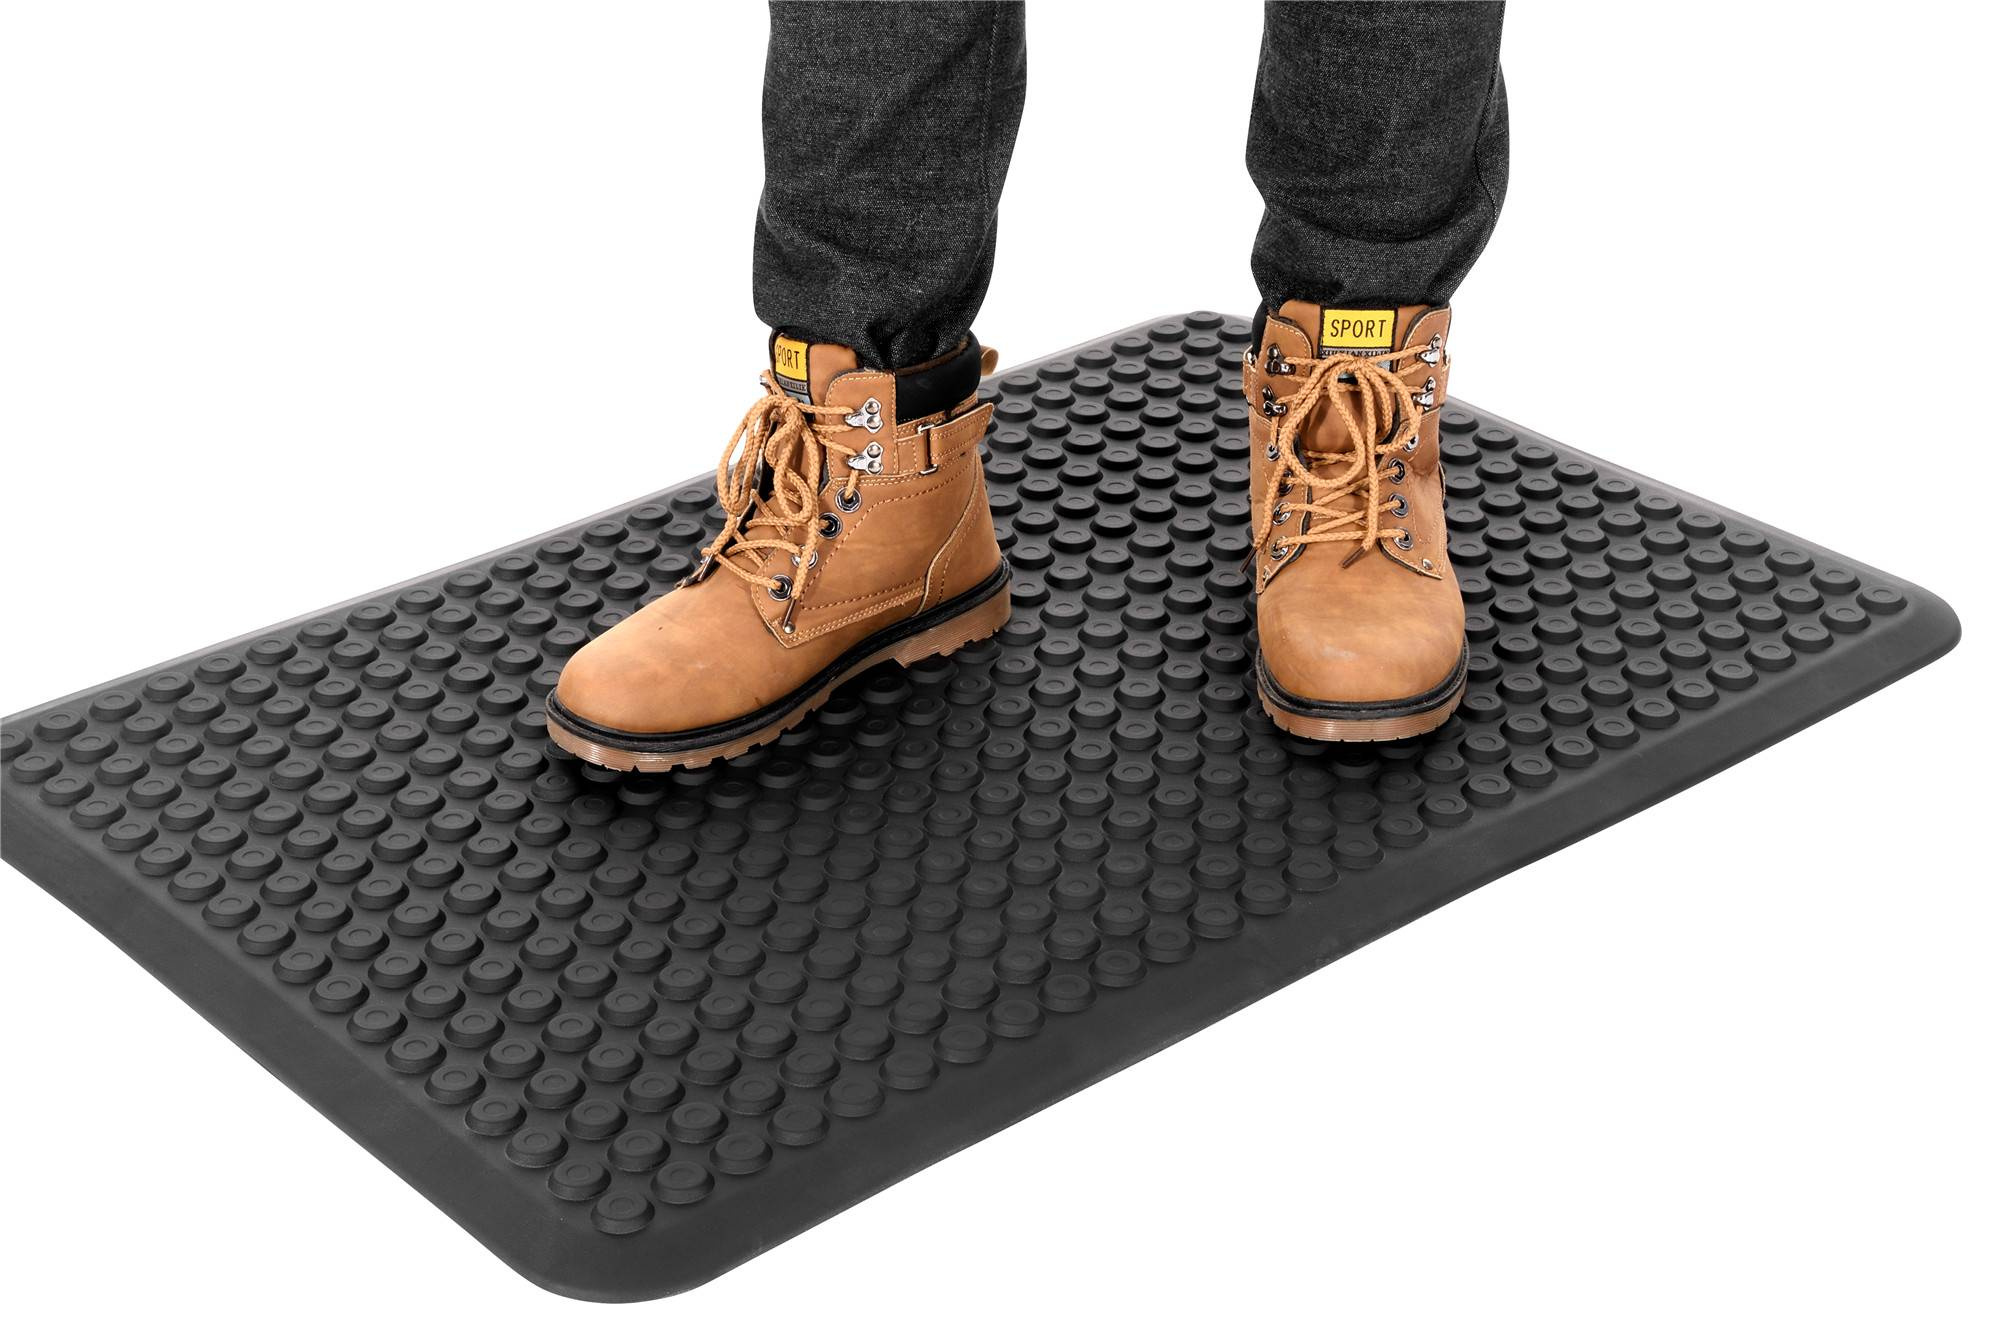 100% anti-fatigue mat and standing mat